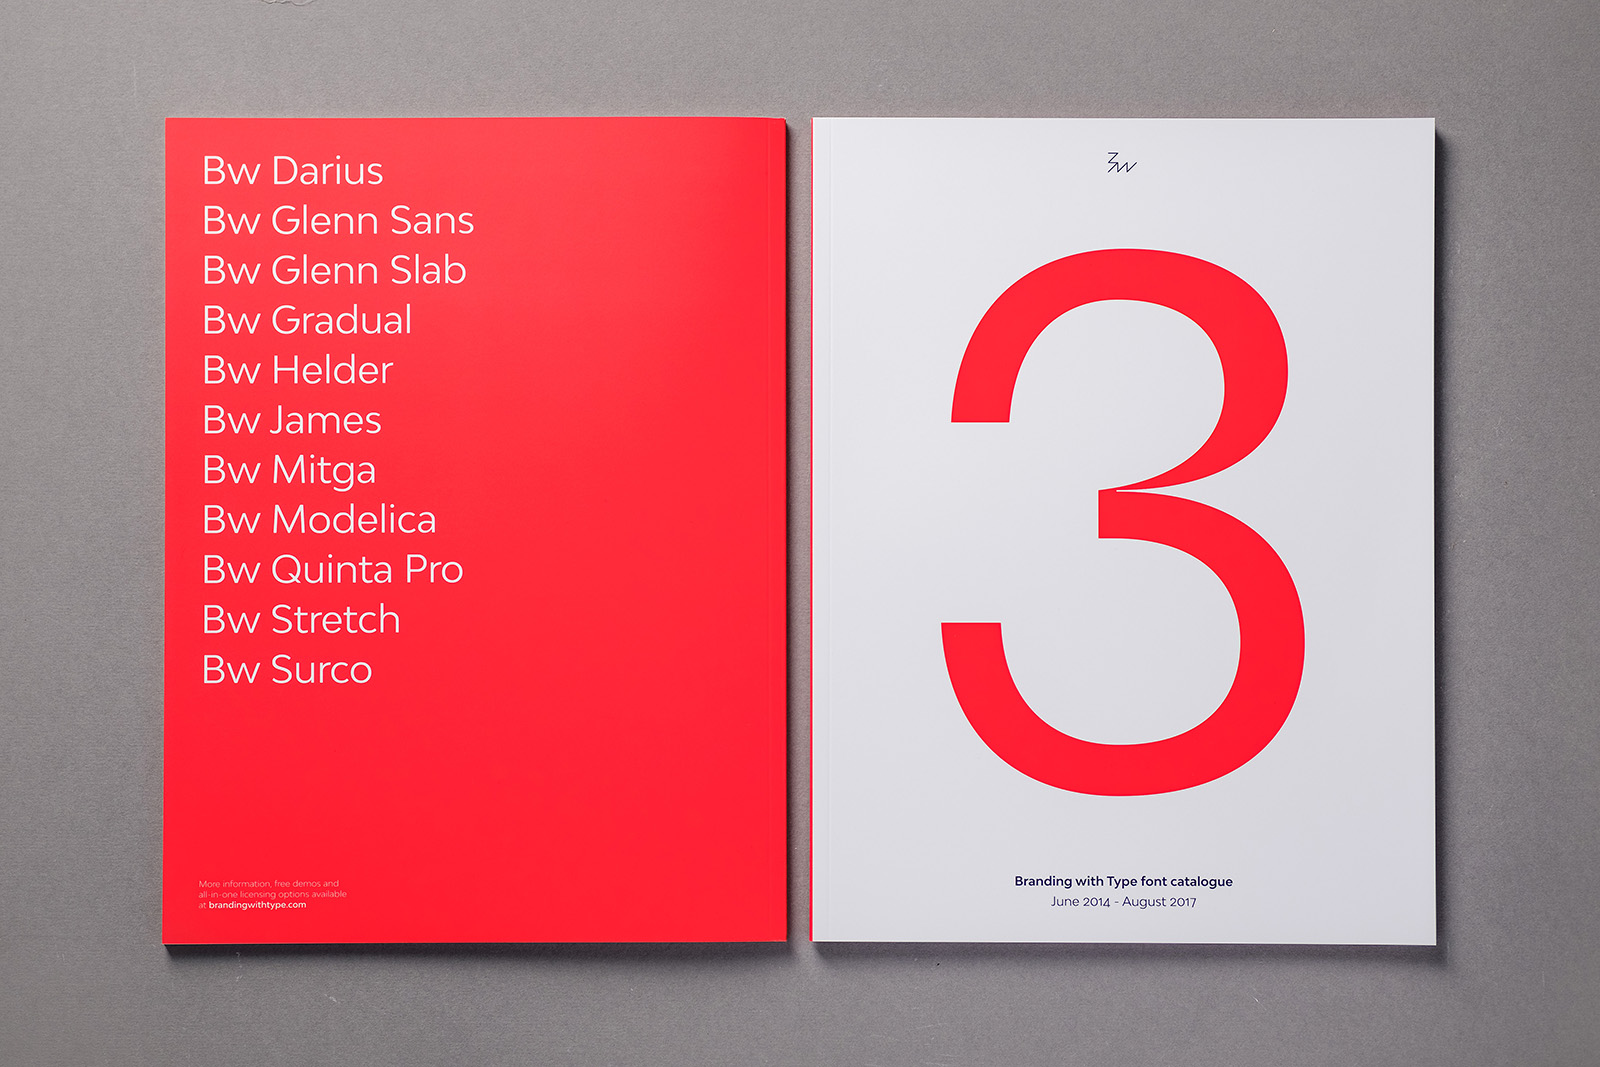 Branding with Type font catalogue